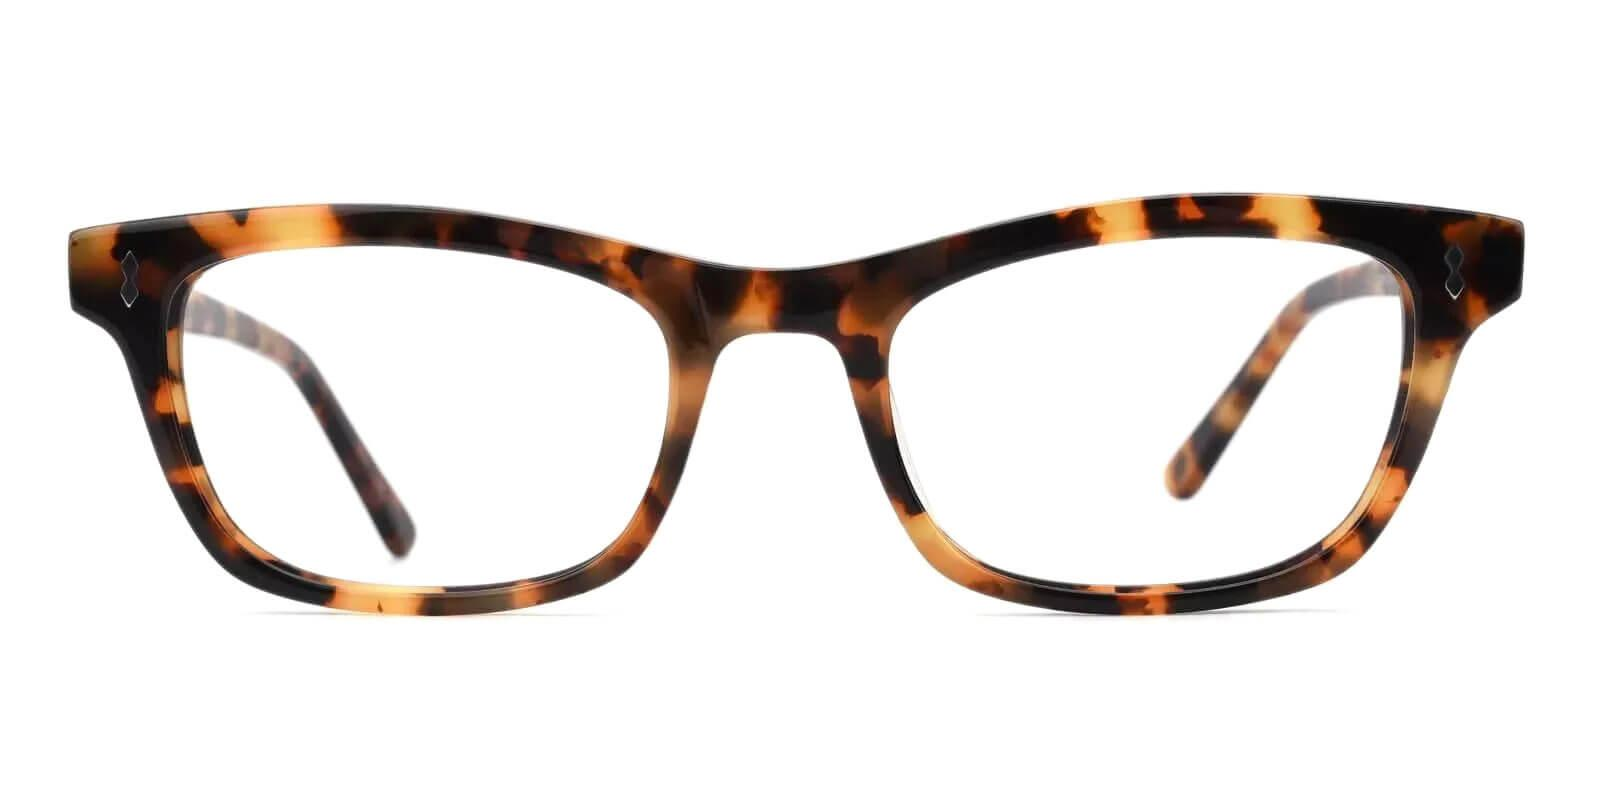 Leaf Tortoise Acetate Eyeglasses , UniversalBridgeFit Frames from ABBE Glasses